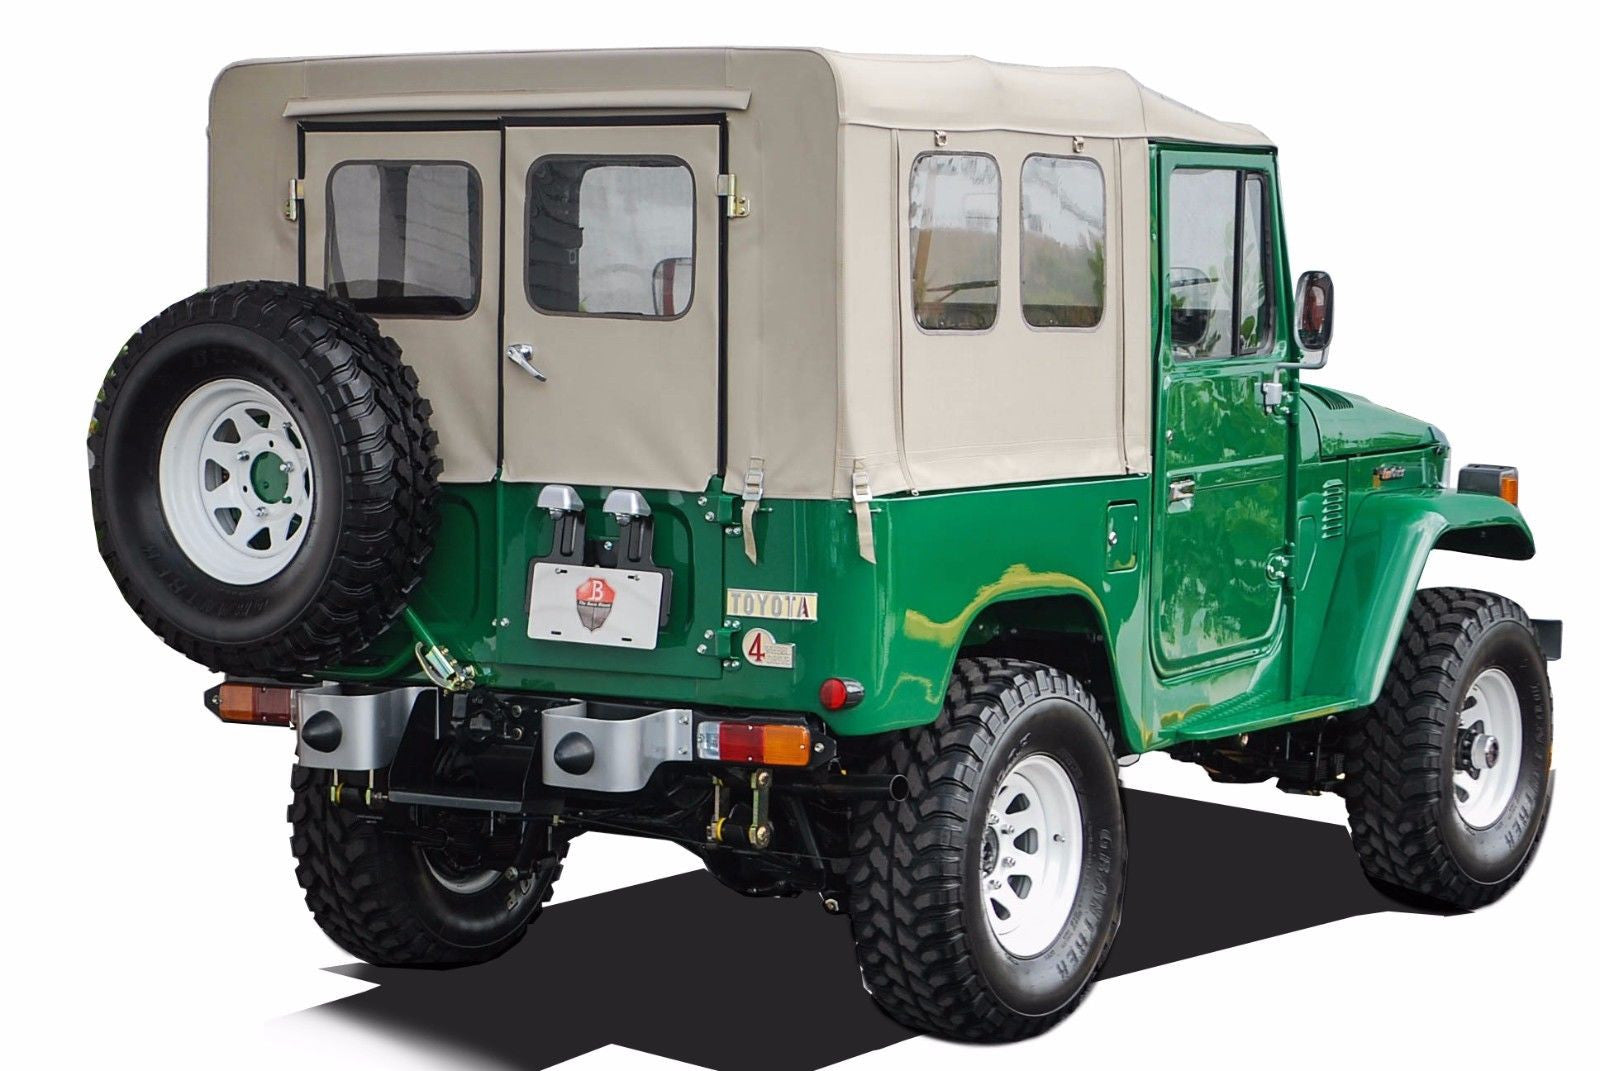 FJ40 Soft Top Complete Kit